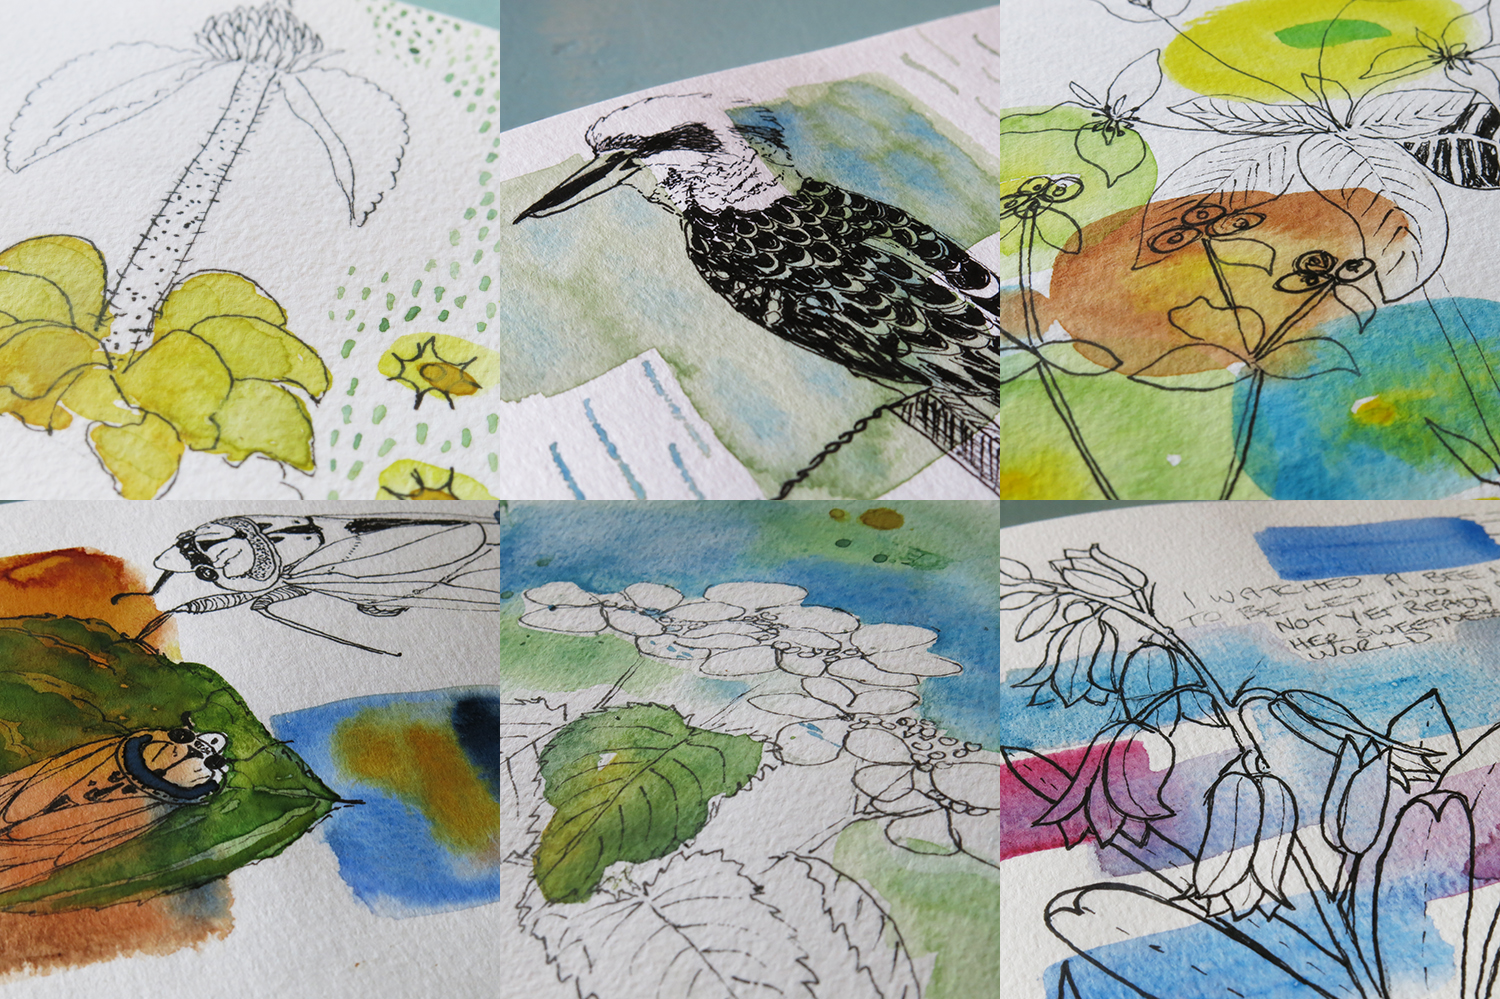 Kookaburra, water colour sketching, art journal  - Galia Alena